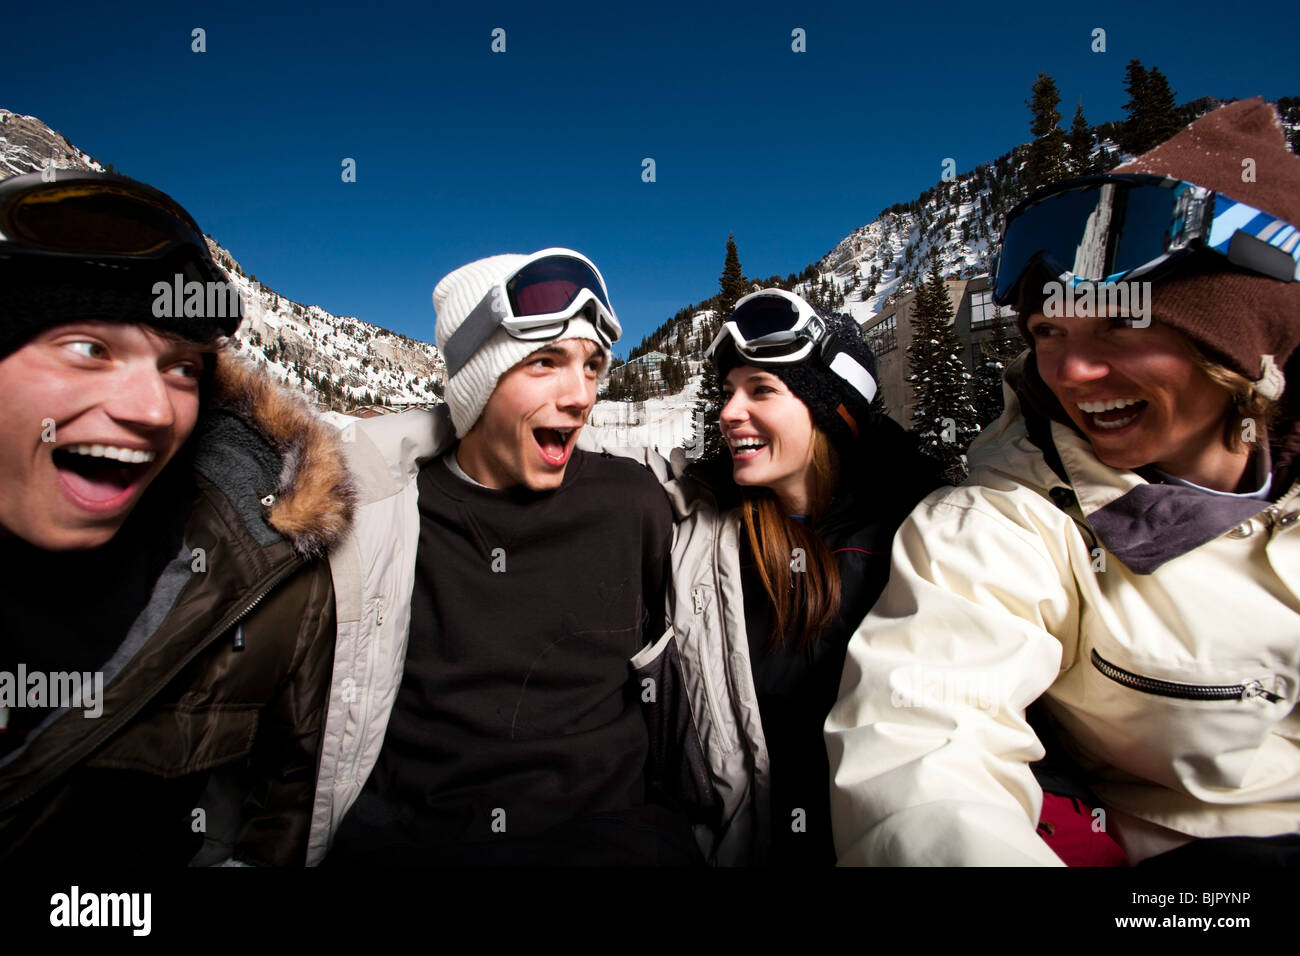 Friends outside in the snow - Stock Image